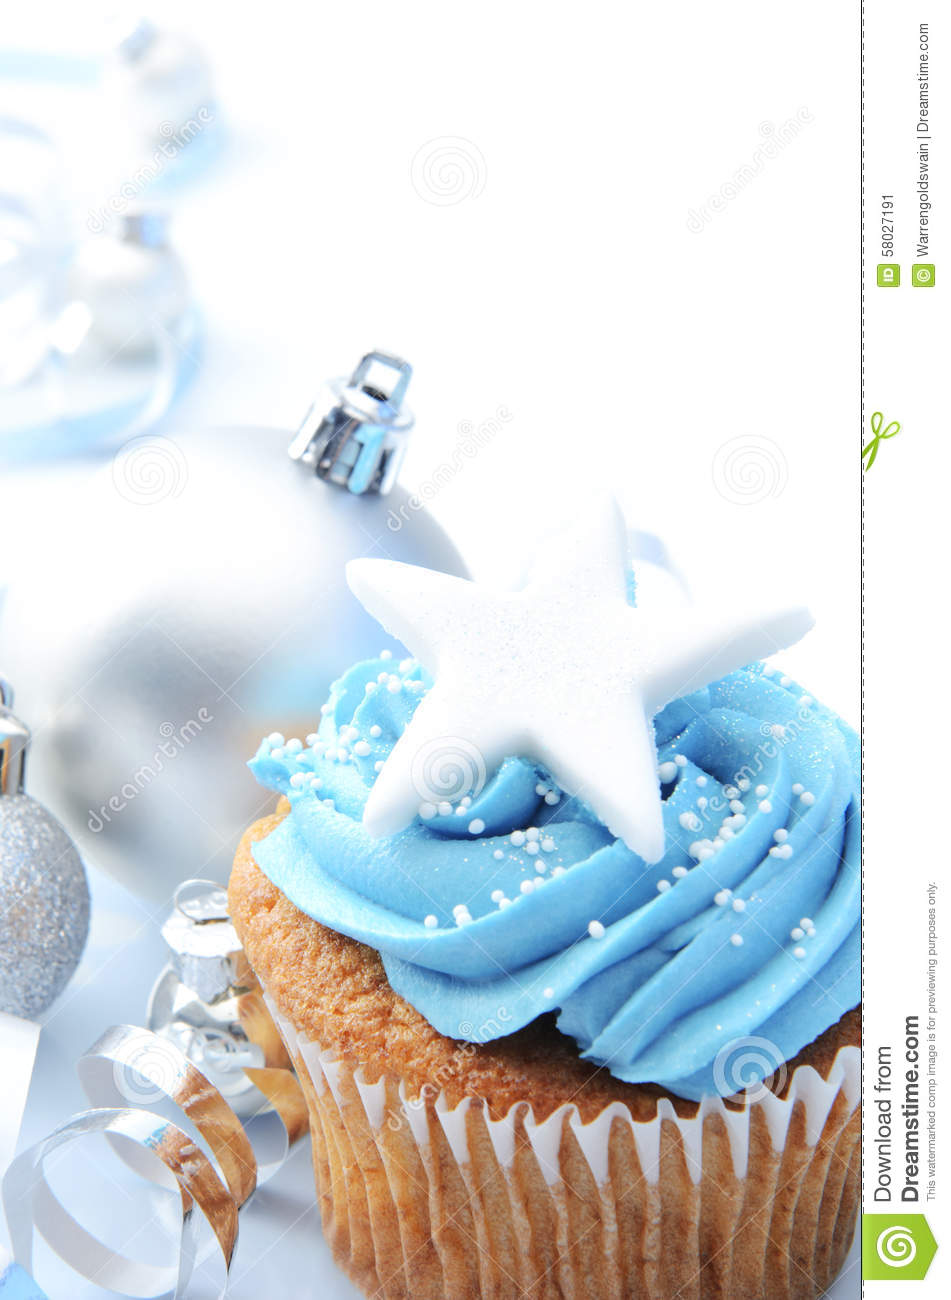 Christmas Cupcake With Silver Ornaments Stock Photo ...